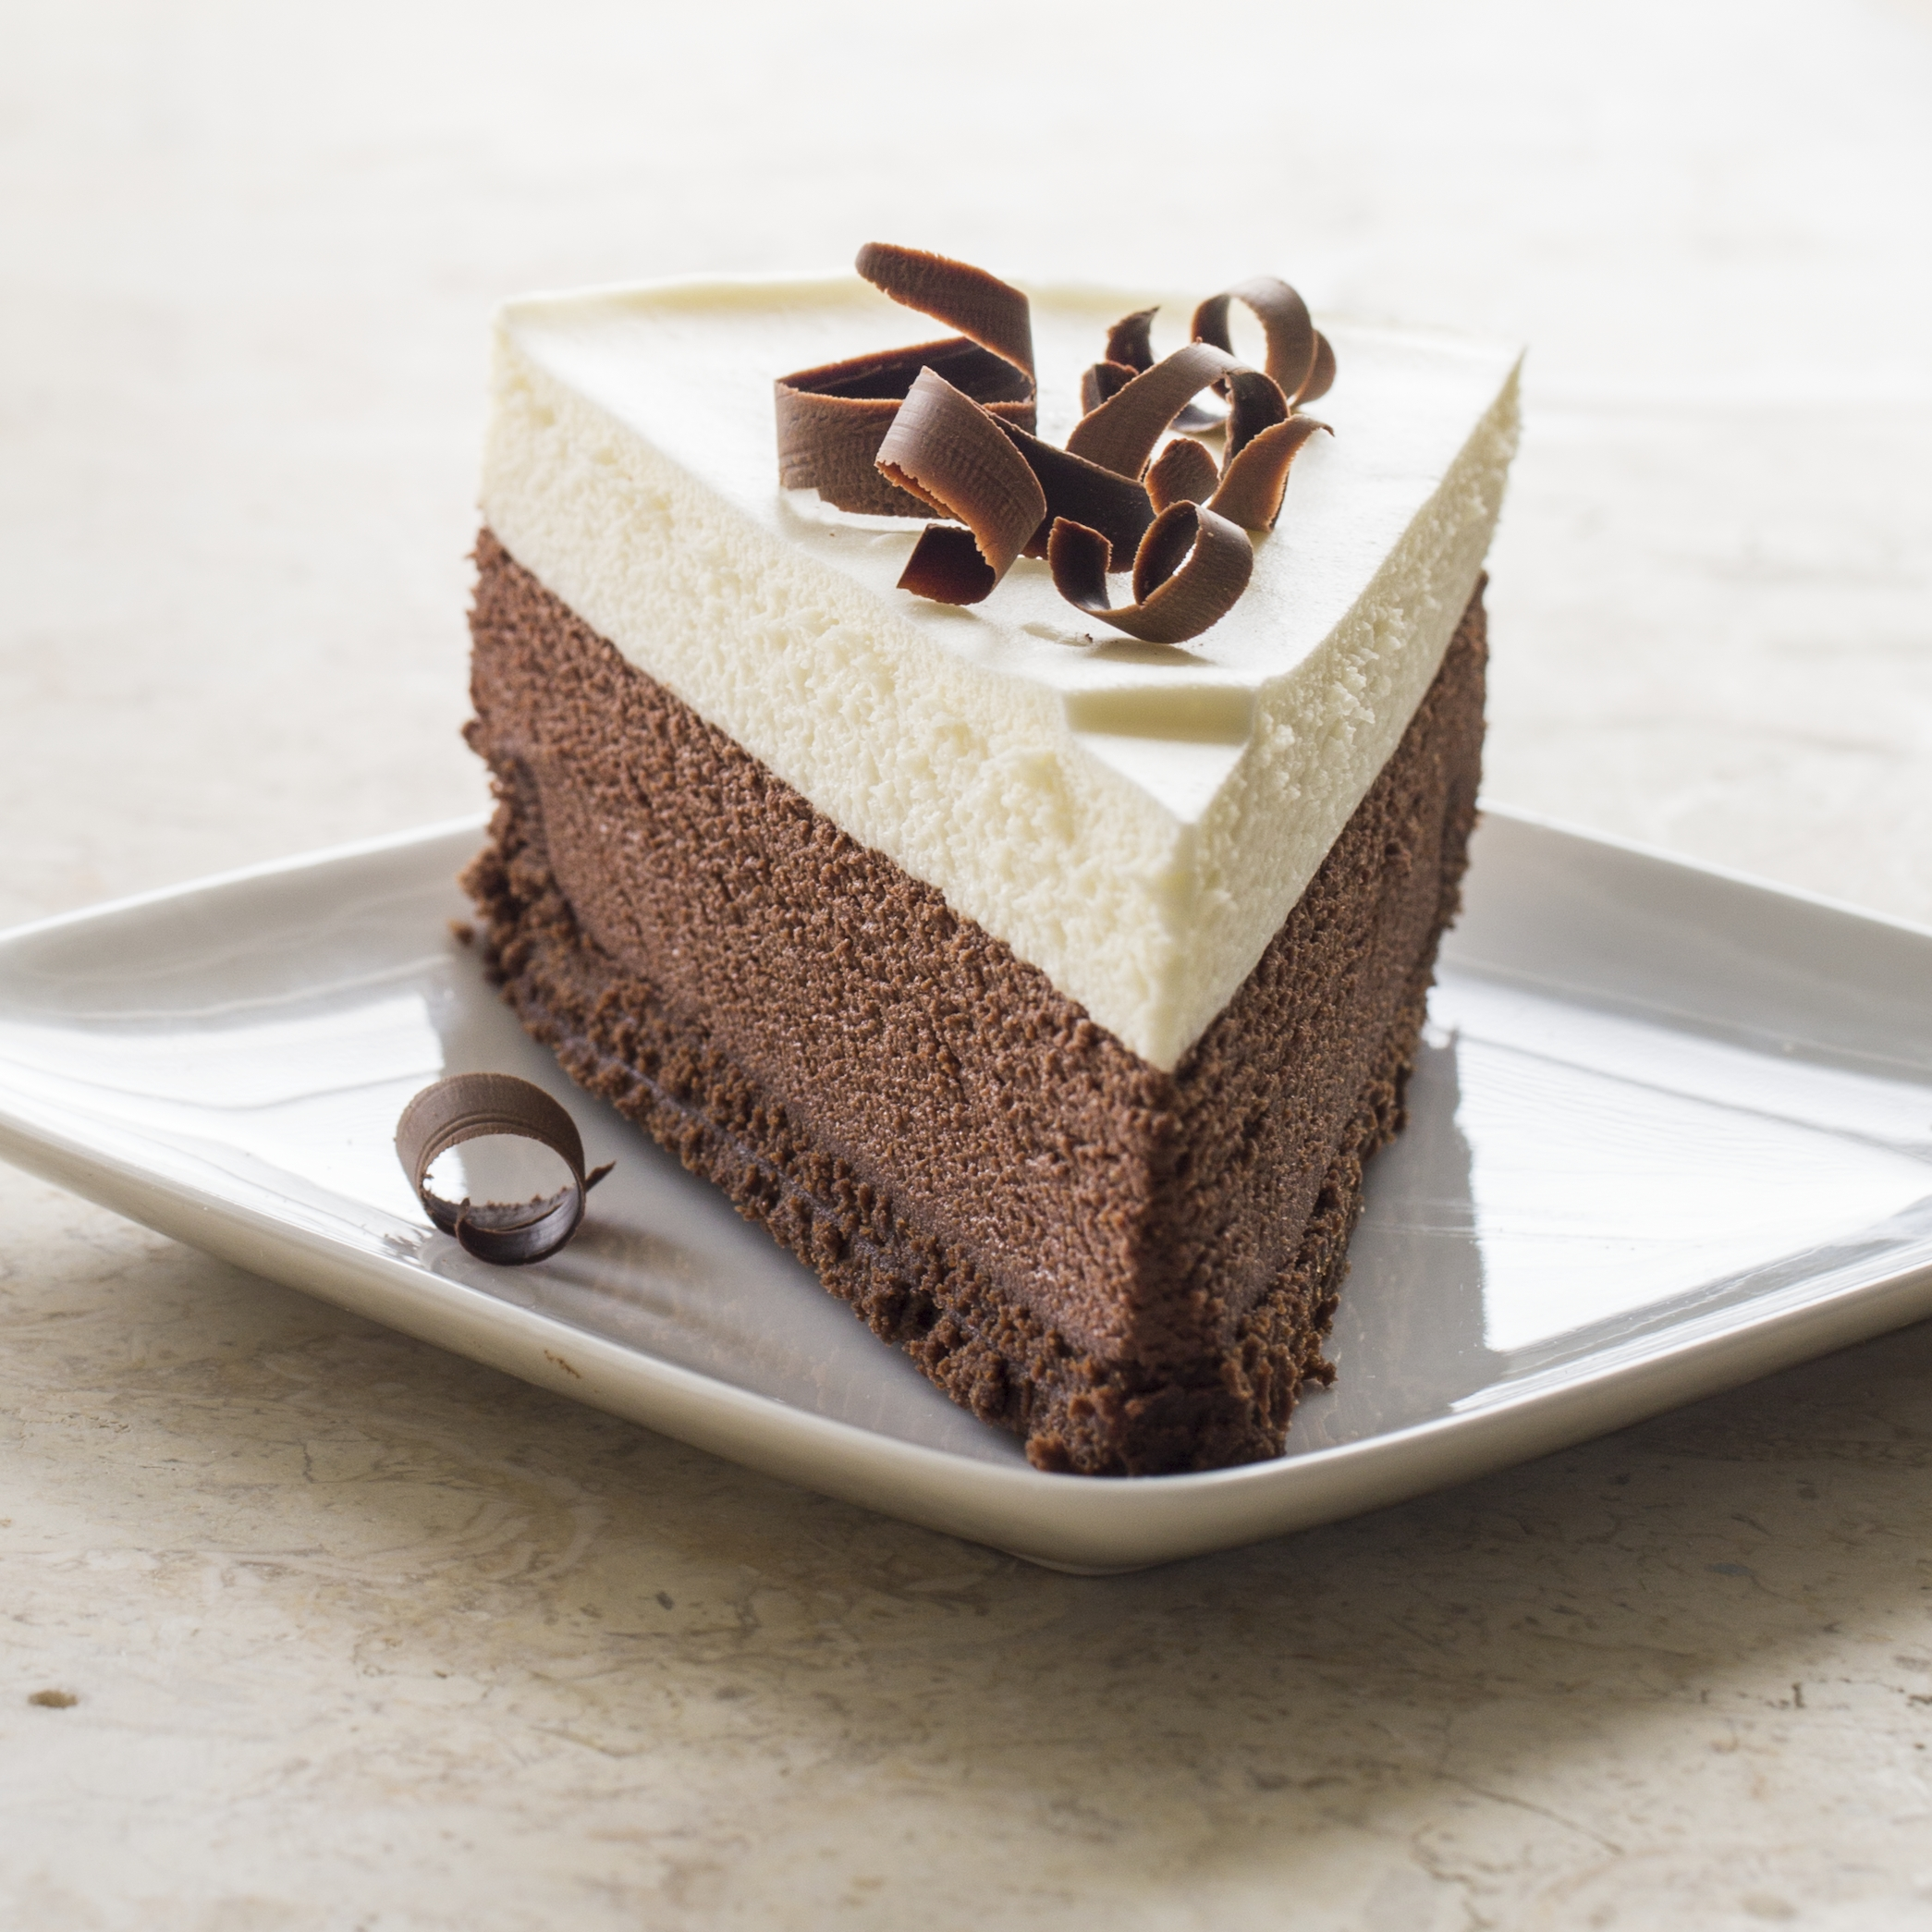 Chocolate Mocha Mousse Torte